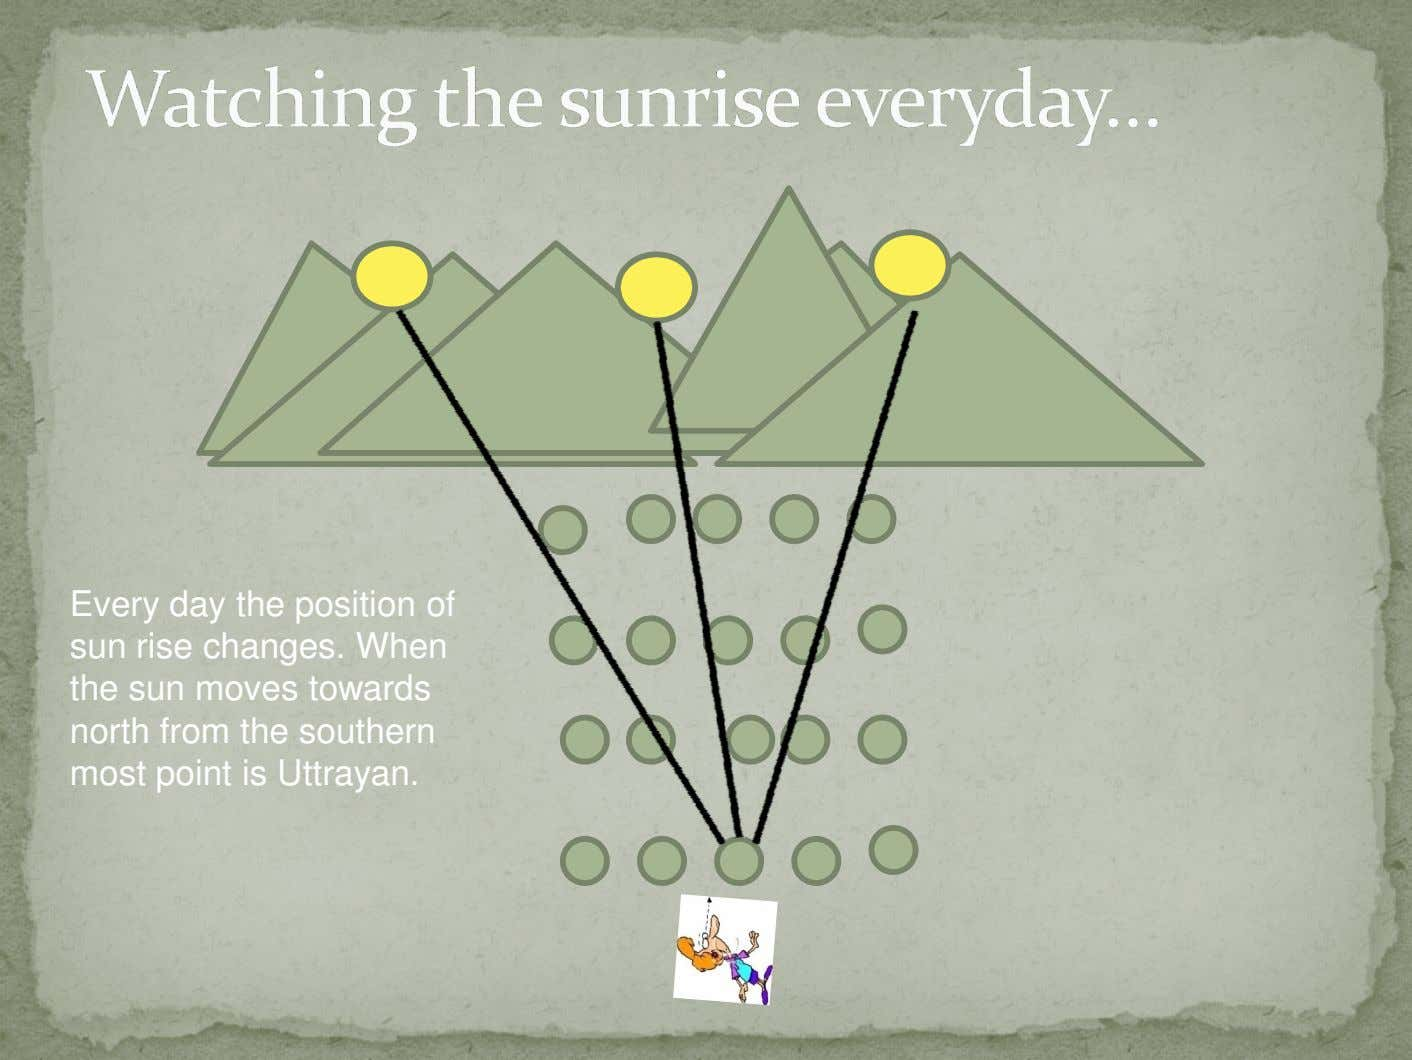 Every day the position of sun rise changes. When the sun moves towards north from